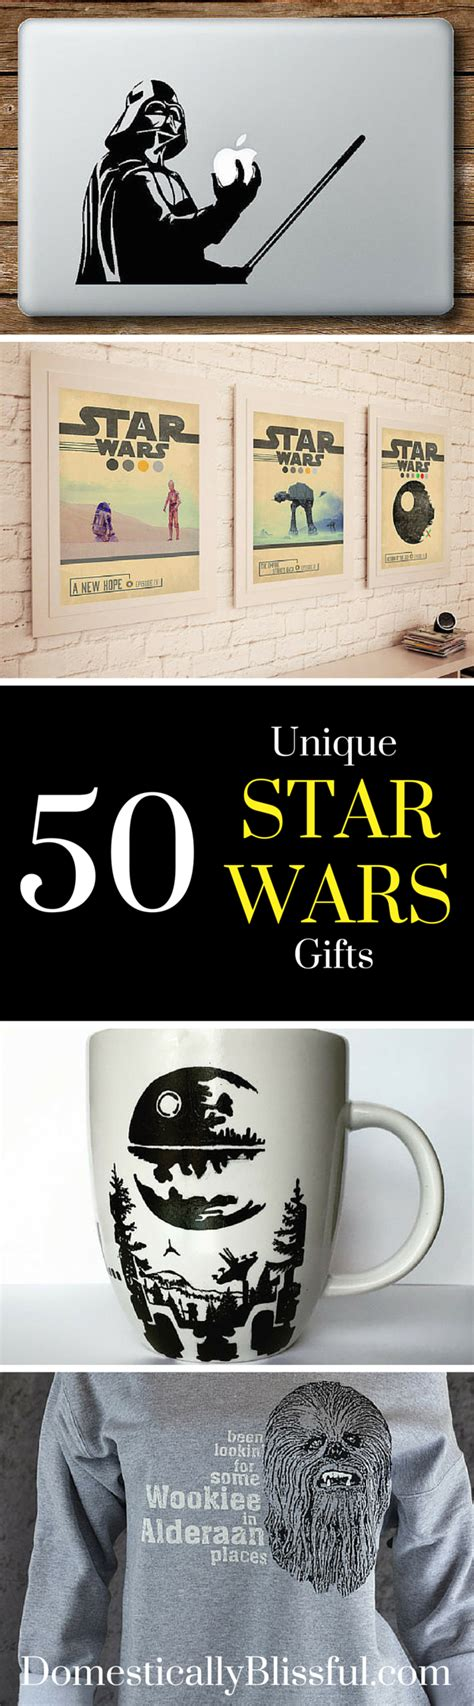 50 unique star wars gifts domestically blissful